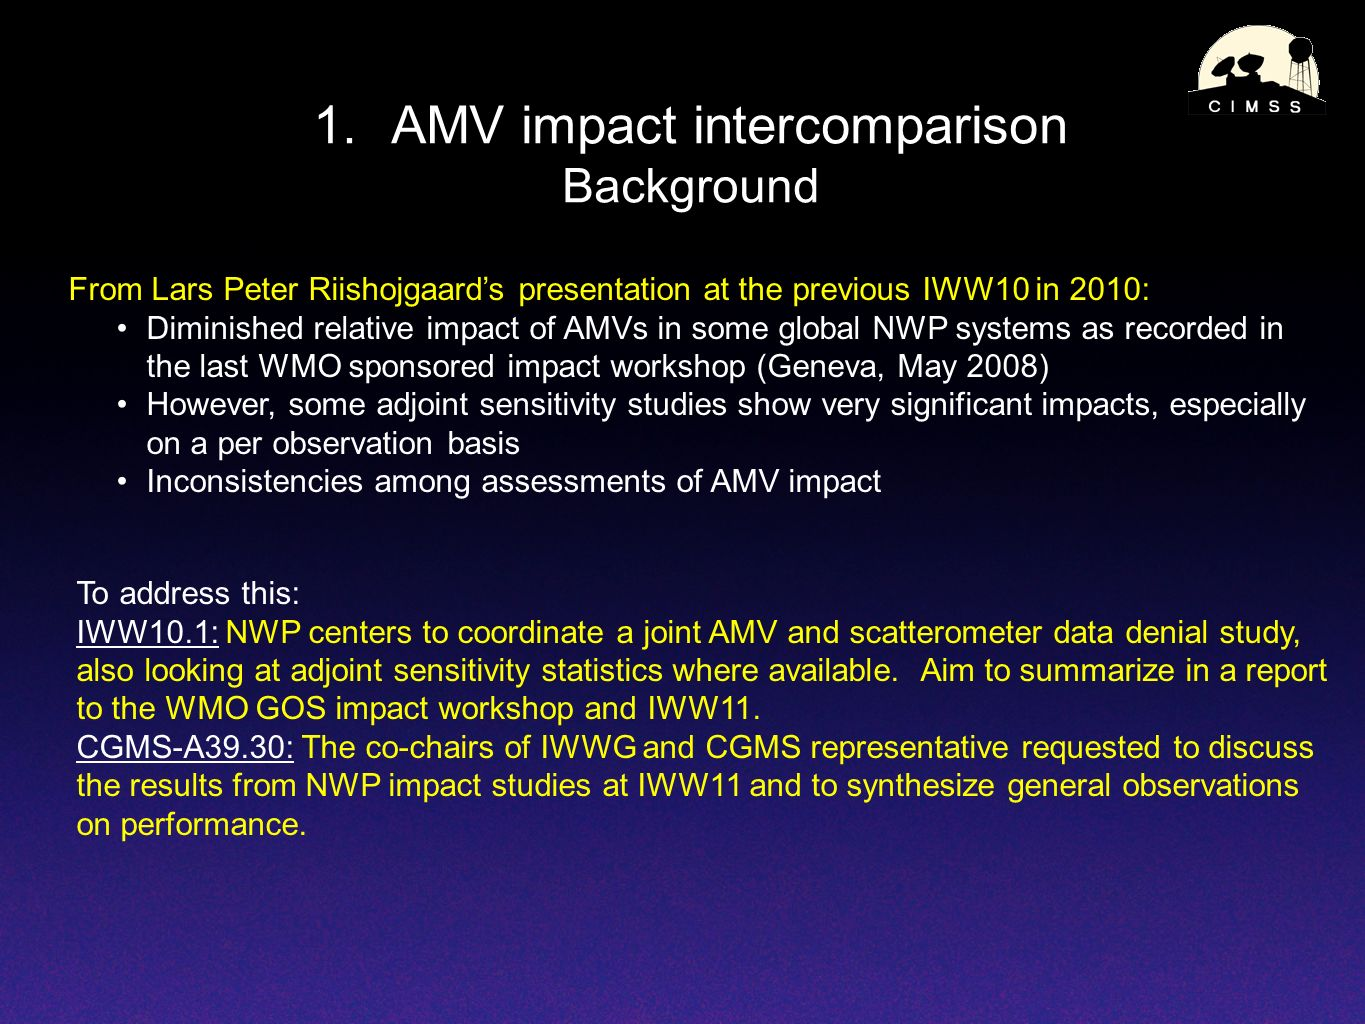 1.AMV impact intercomparison Background From Lars Peter Riishojgaards presentation at the previous IWW10 in 2010: Diminished relative impact of AMVs i